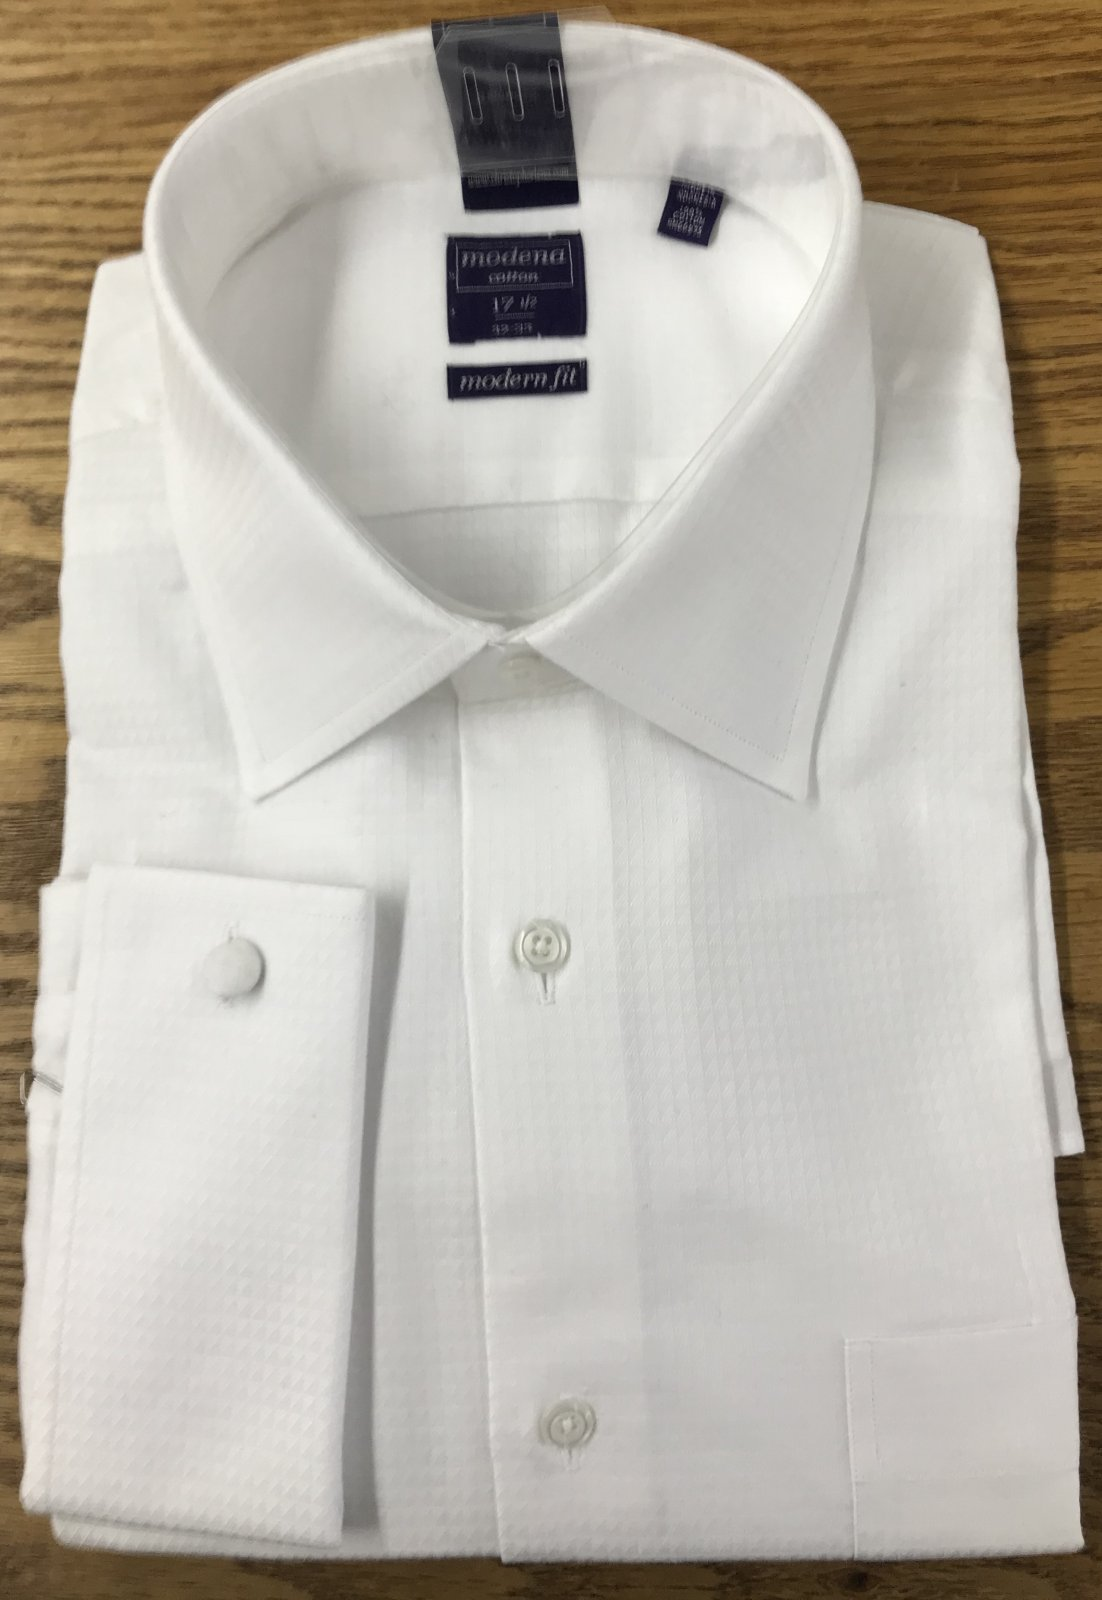 Modena Modern White French Cuff Shirt